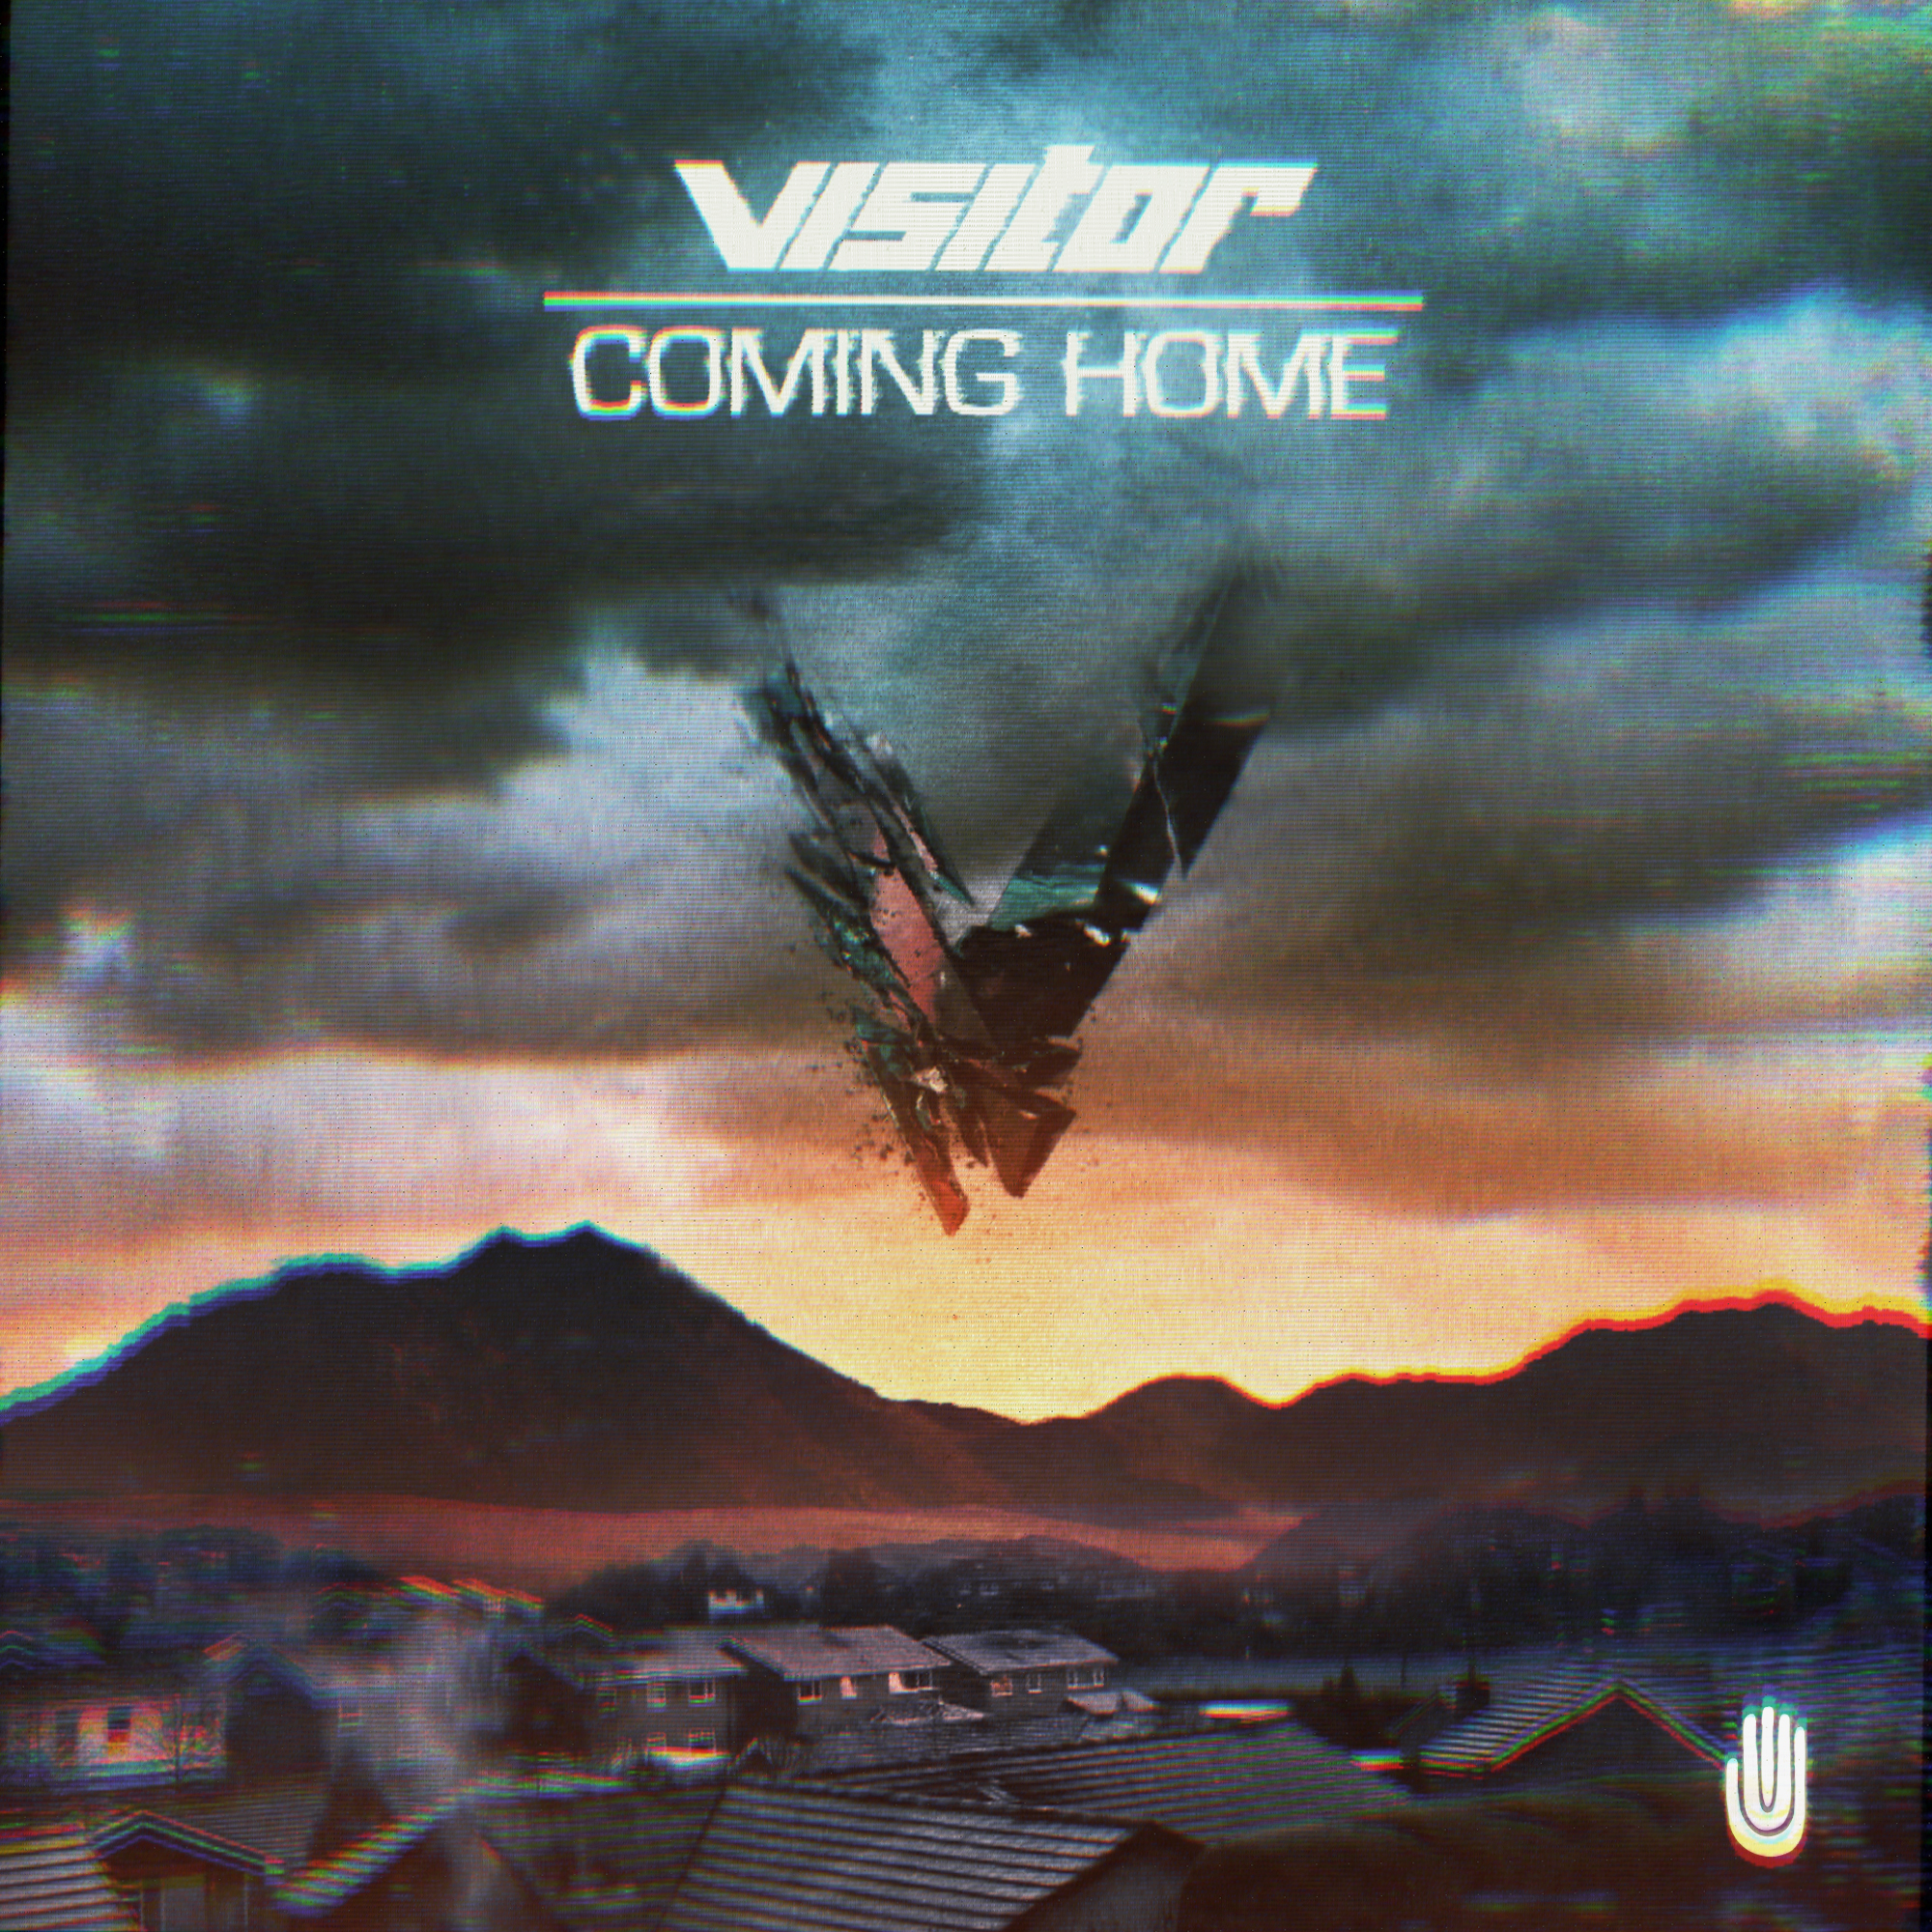 Visitor - Coming Home / RNB - cover art - sodwee